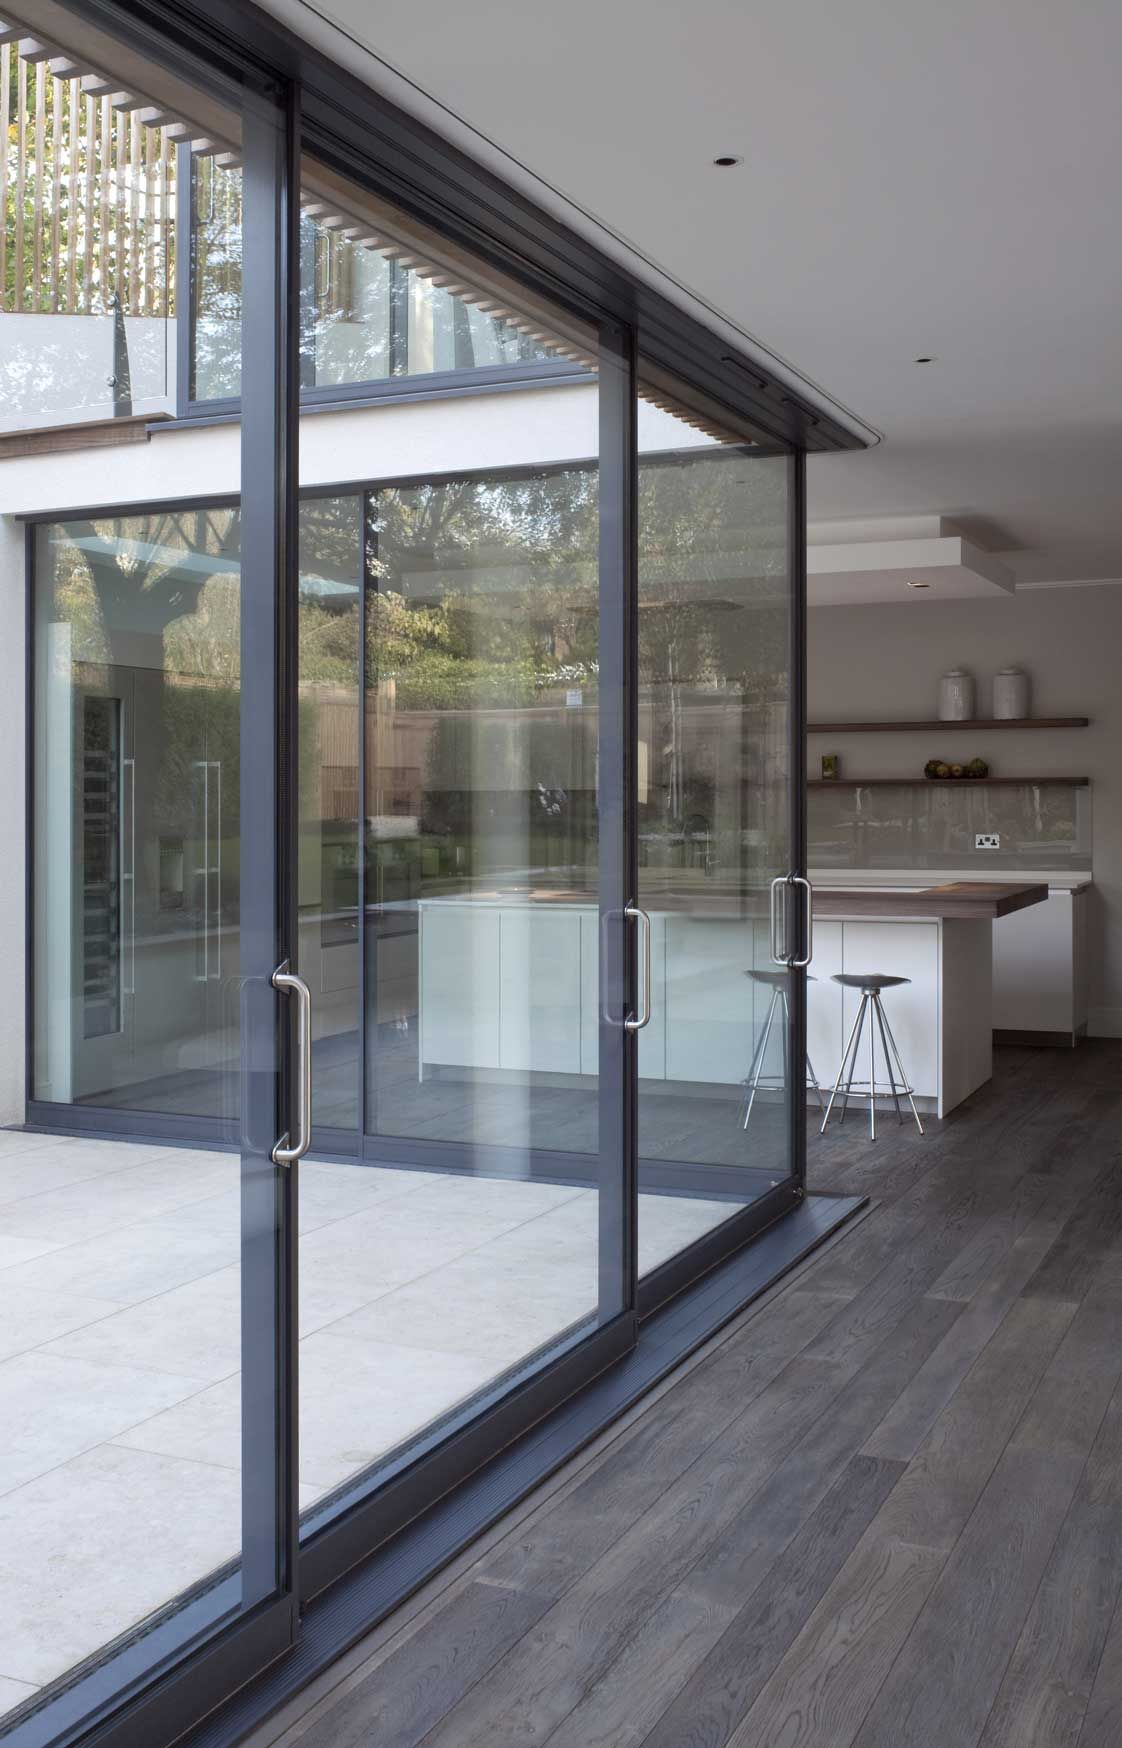 fineline aluminnium sliding doors 2 & fineline aluminnium sliding doors 2 | Home.Design.Living | Pinterest ...